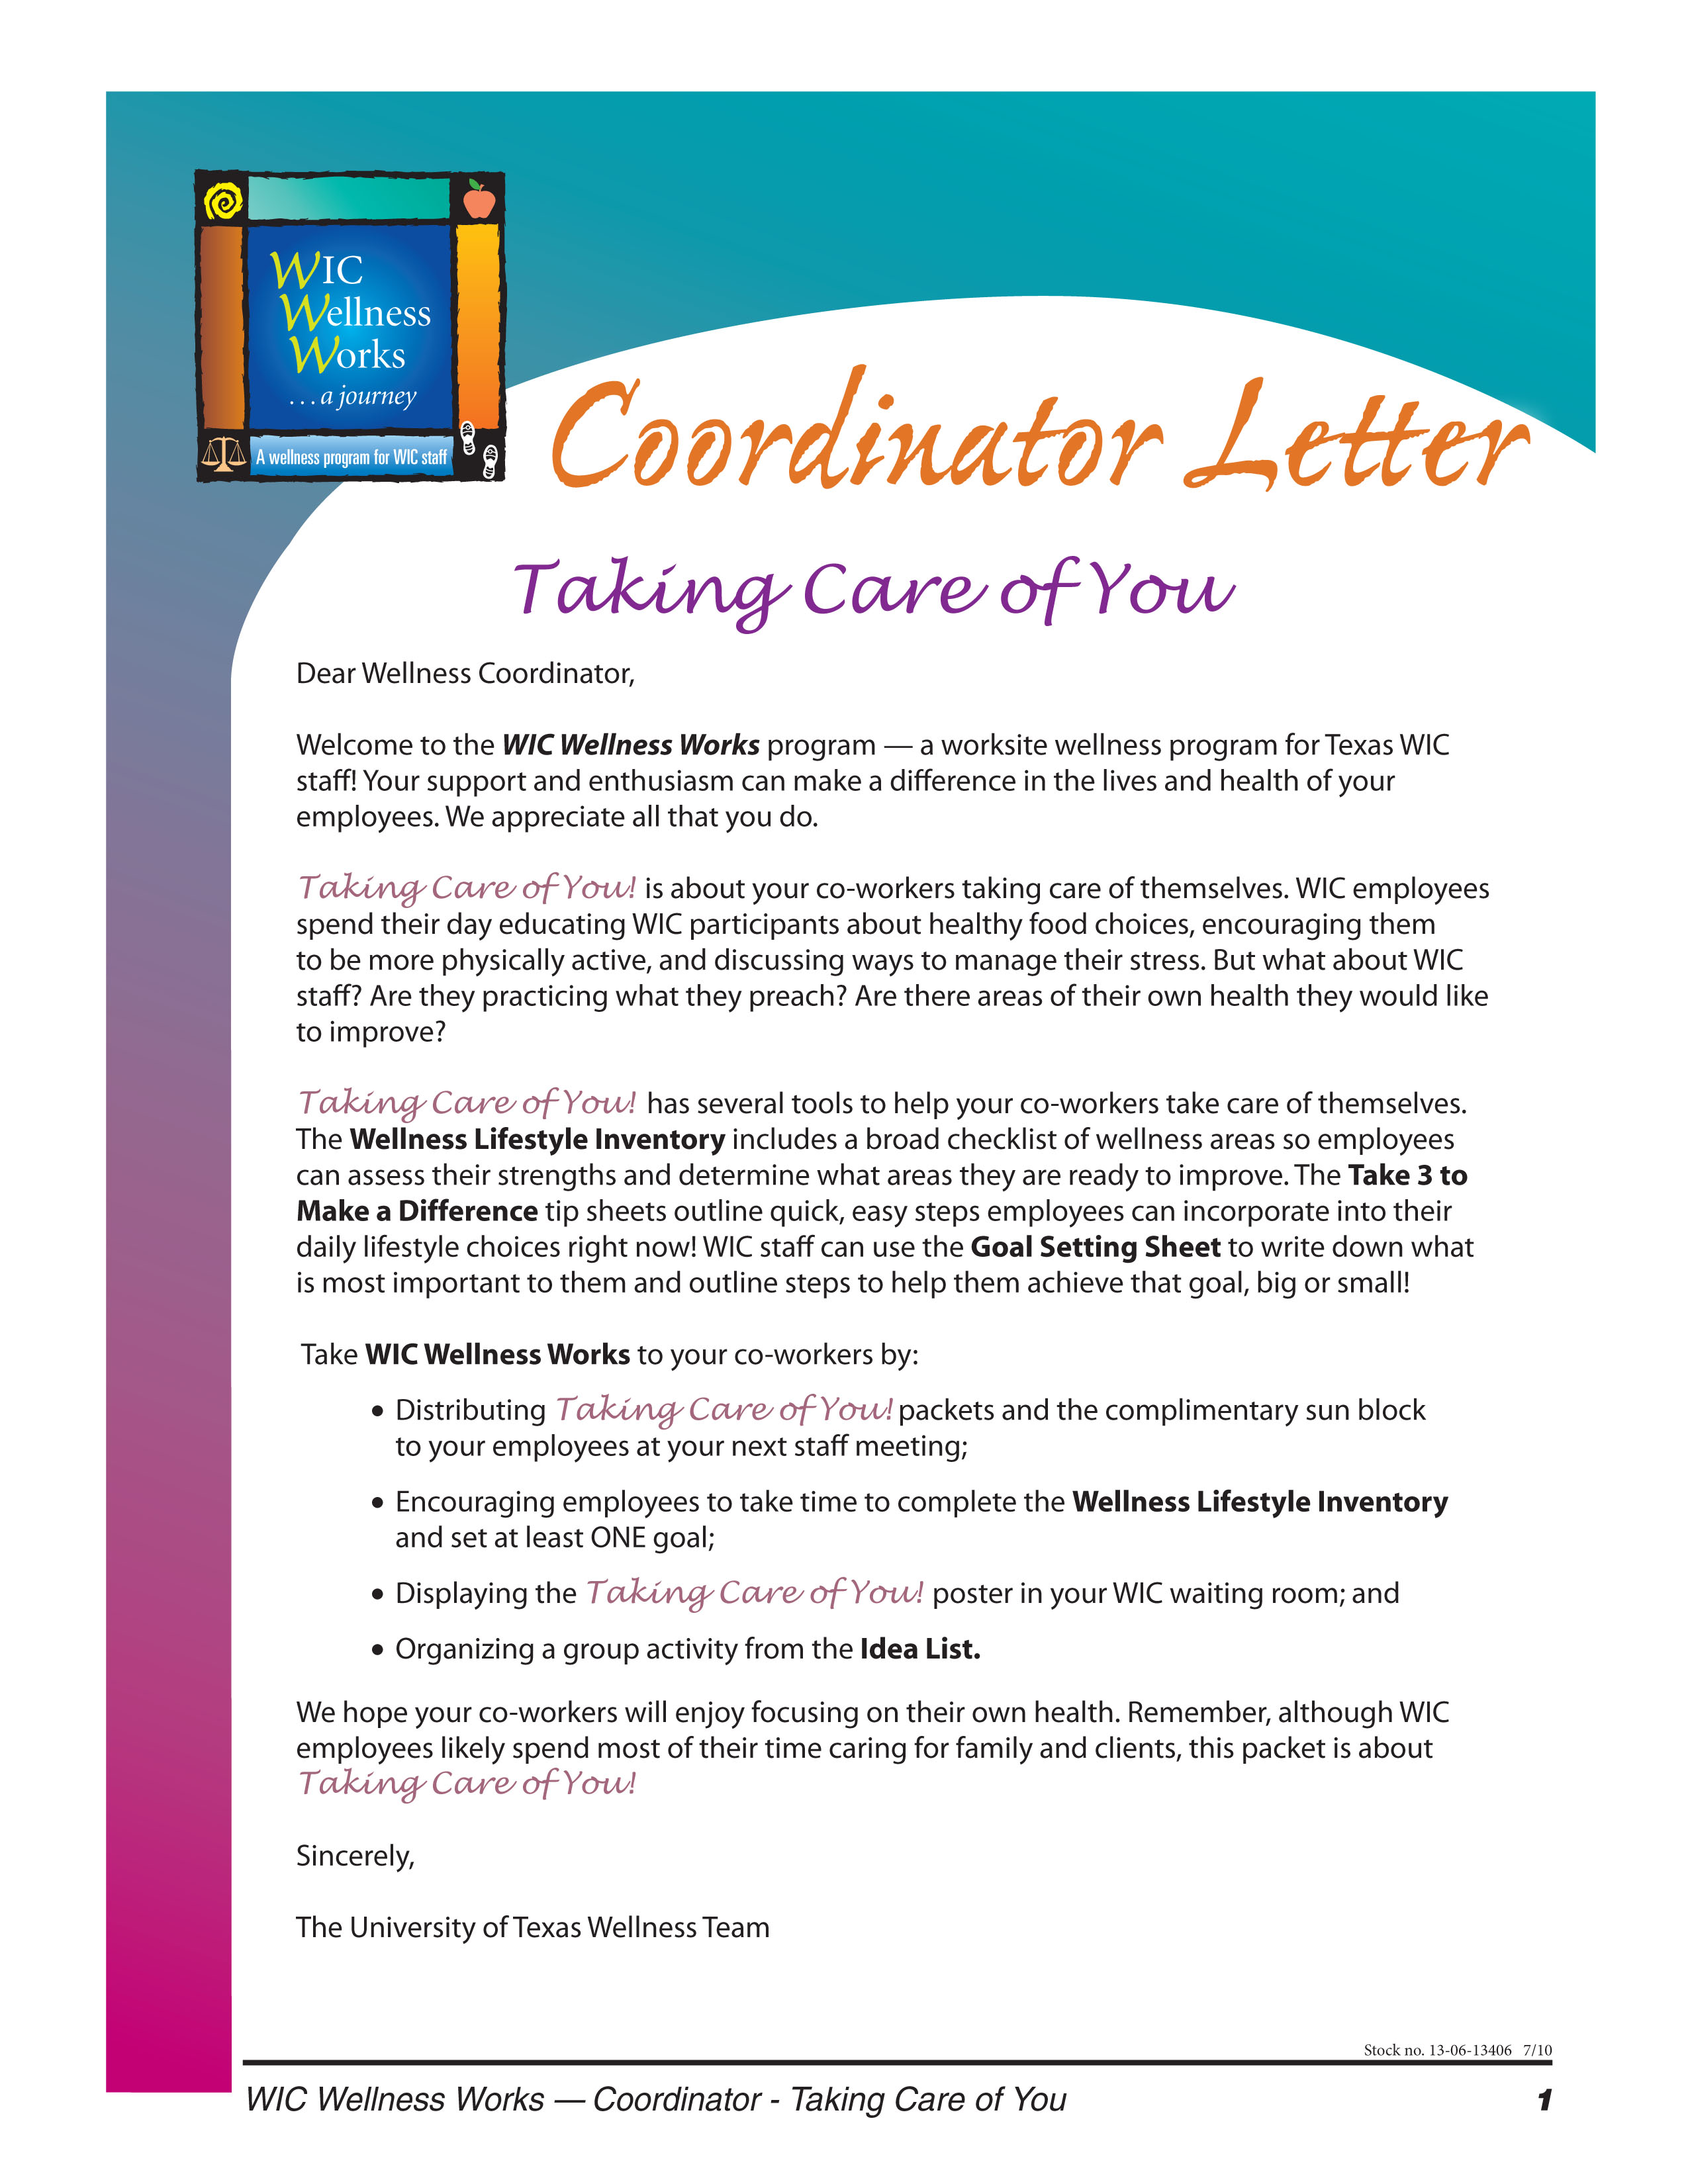 Taking Care of You Coordinator Packet